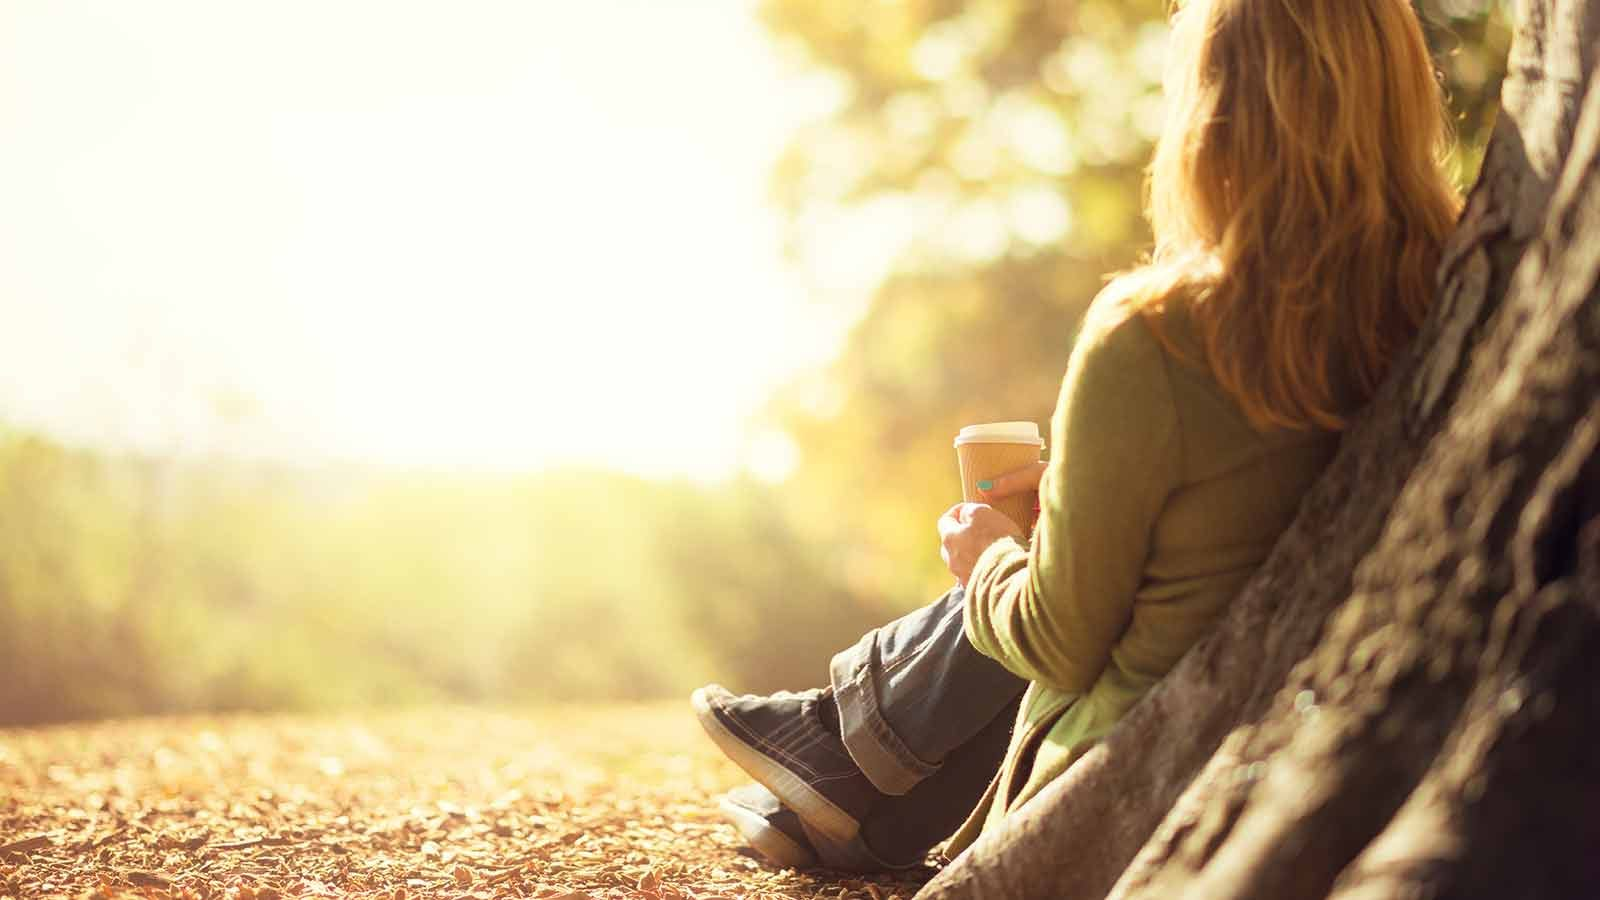 Woman sitting under a tree drinking a cup of coffee.